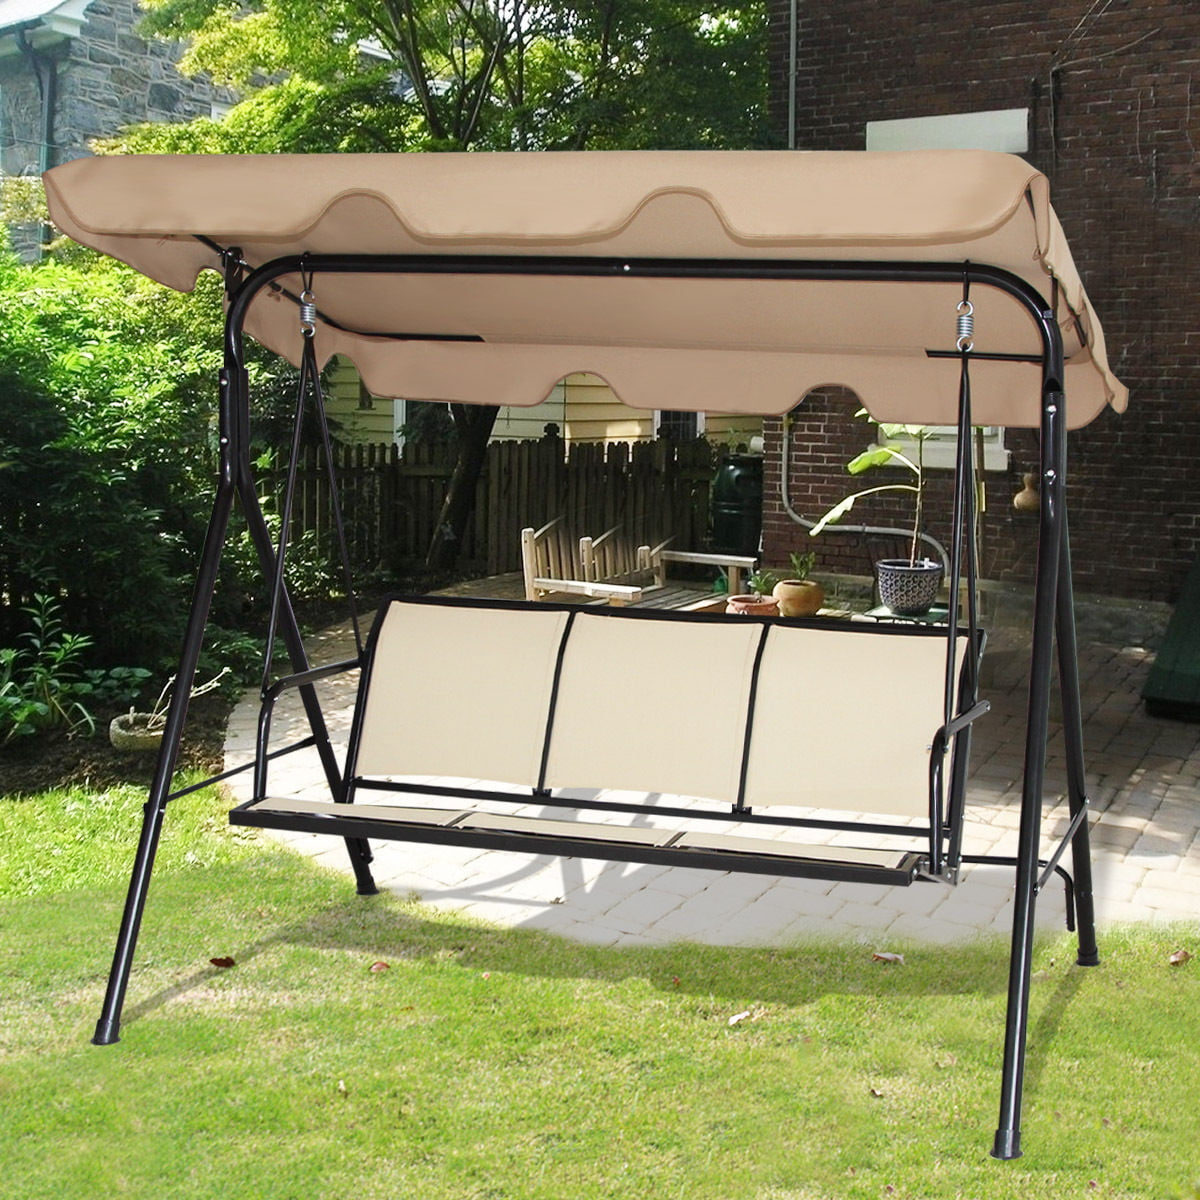 Gymax Brown Outdoor Swing Canopy Patio Swing Chair 3 ...